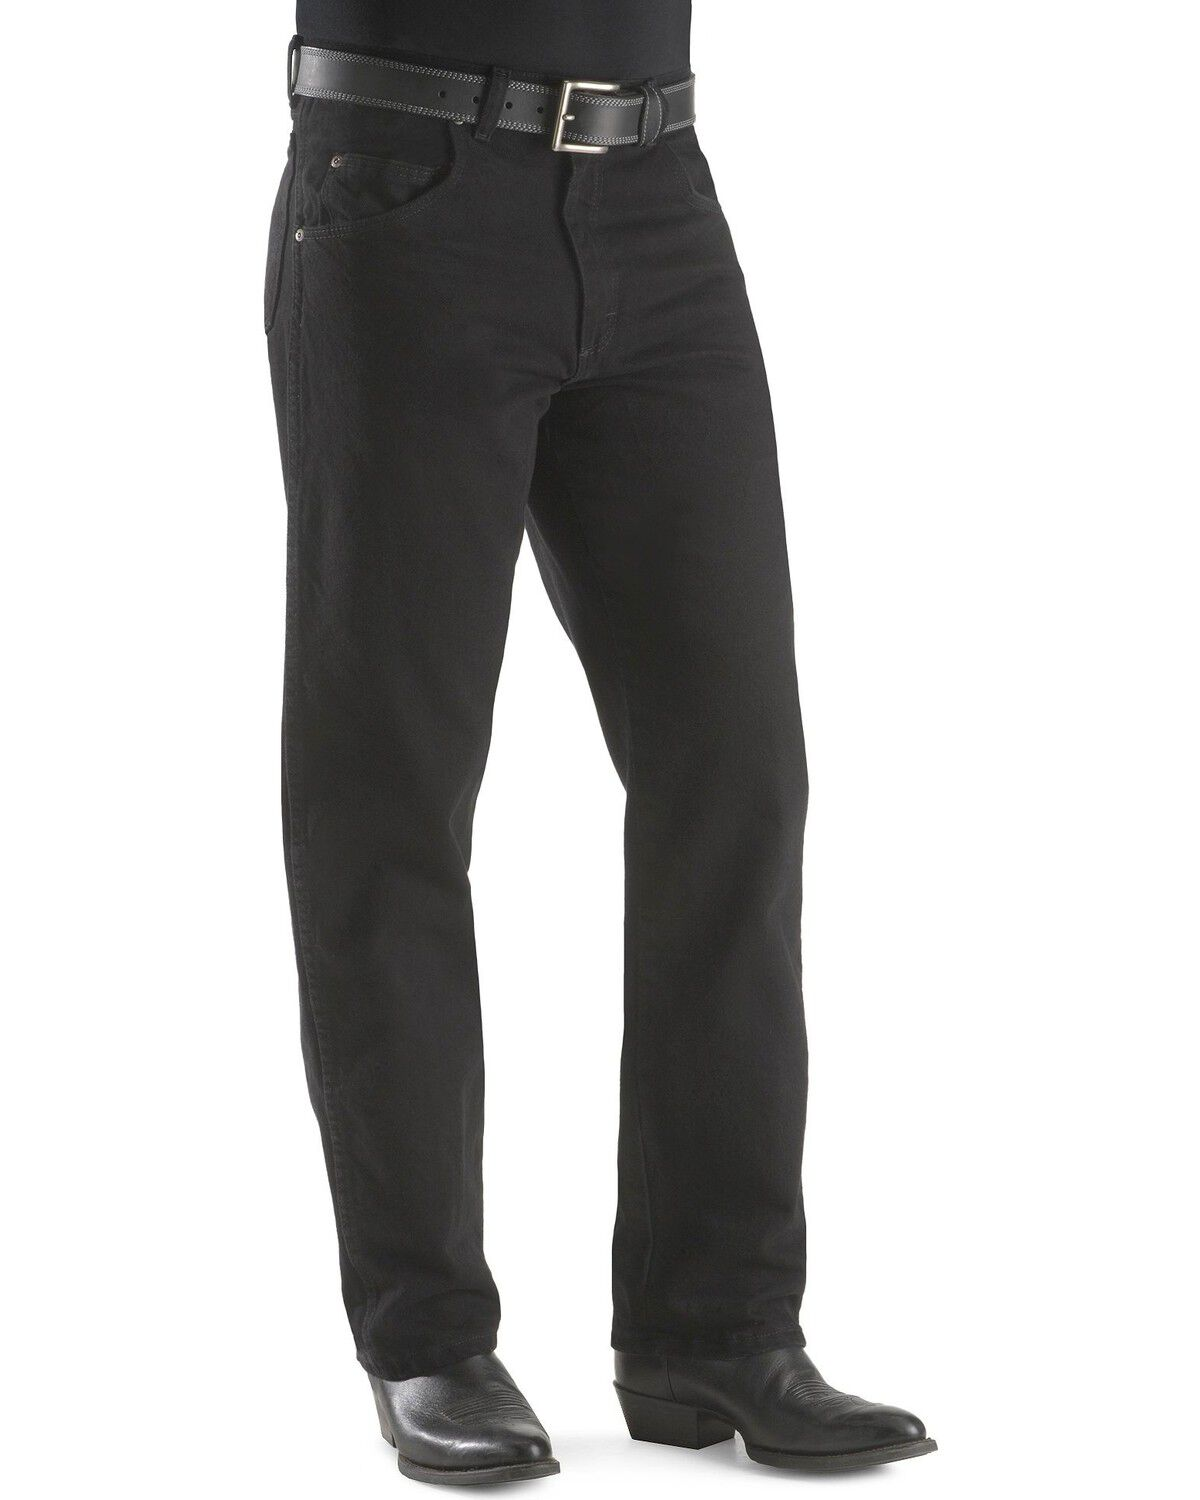 Wrangler Jeans   Rugged Wear Relaxed Fit, Black, Hi Res